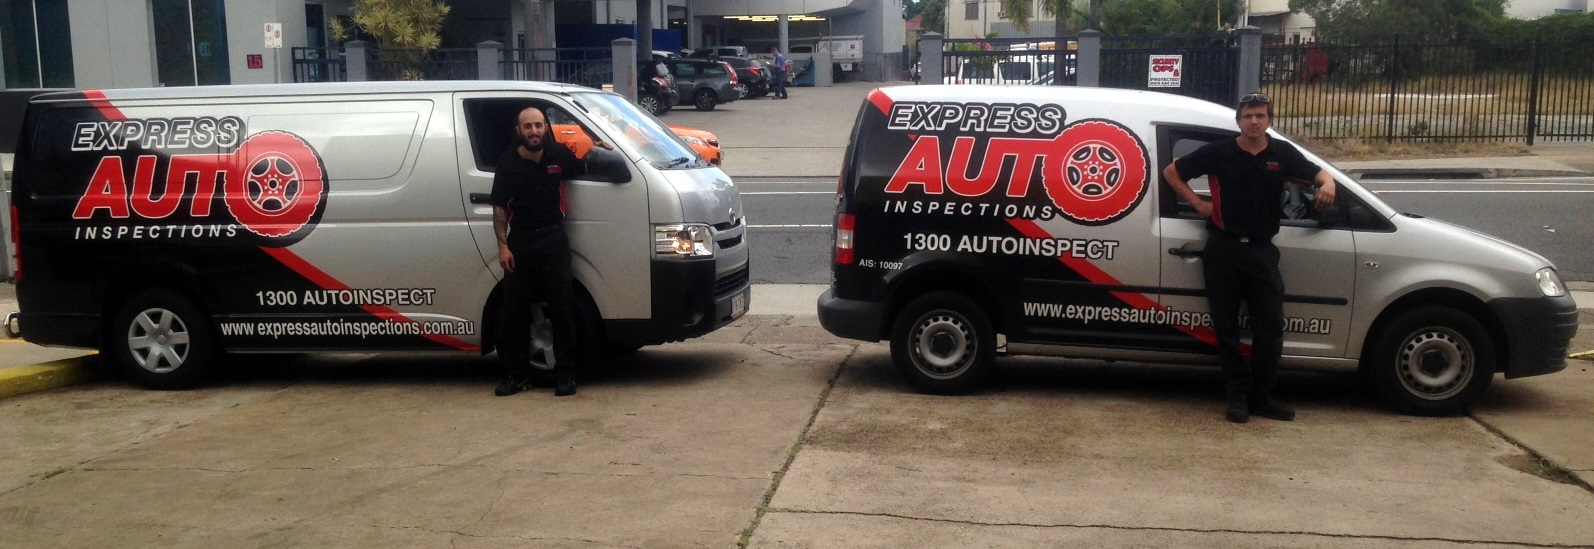 Mobile Mechanic in Brisbane - Express Auto Inspections